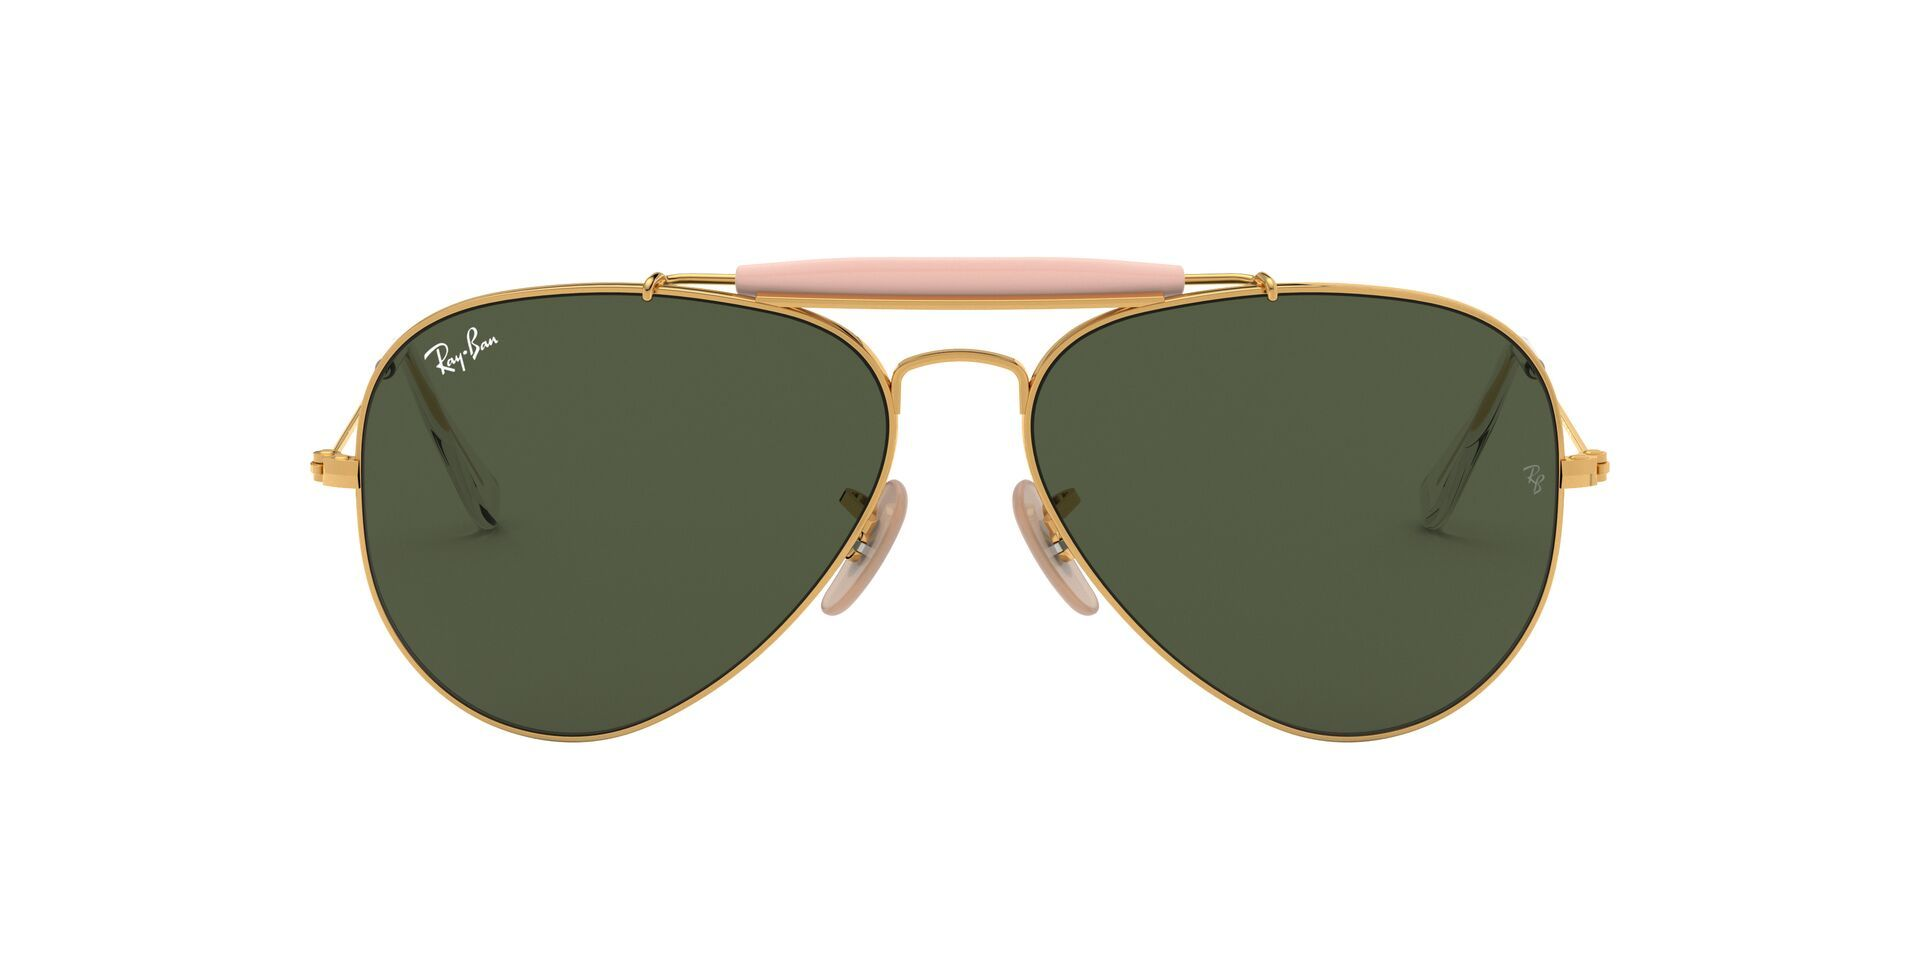 Ray Ban - RB3029 Gold Aviator Men Sunglasses - 62mm-Sunglasses-Designer Eyes